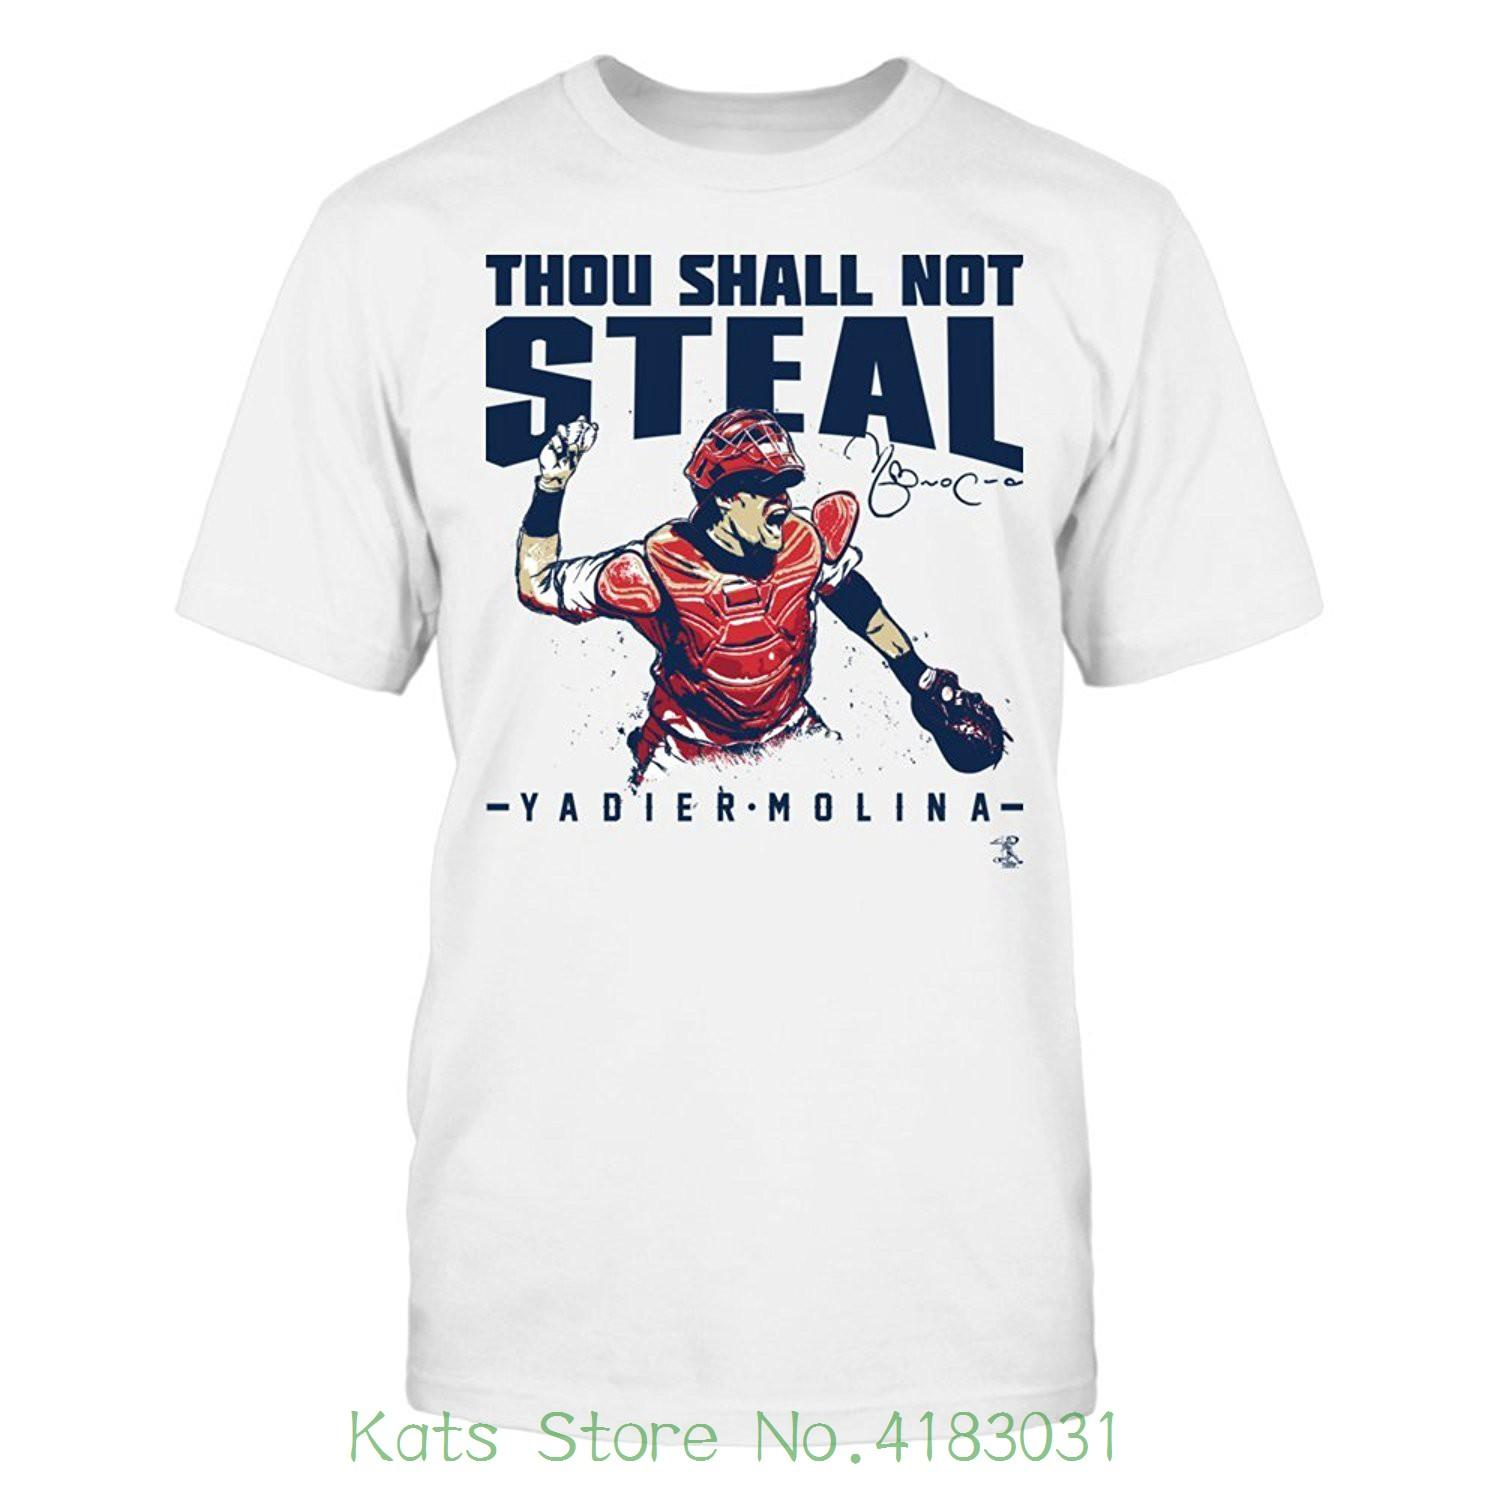 best website d1e63 2bc33 Yadier Molina Thou Shall Not Steal T shirt Officially Licensed Fashion  Sportsy Apparel New 2018 Funny